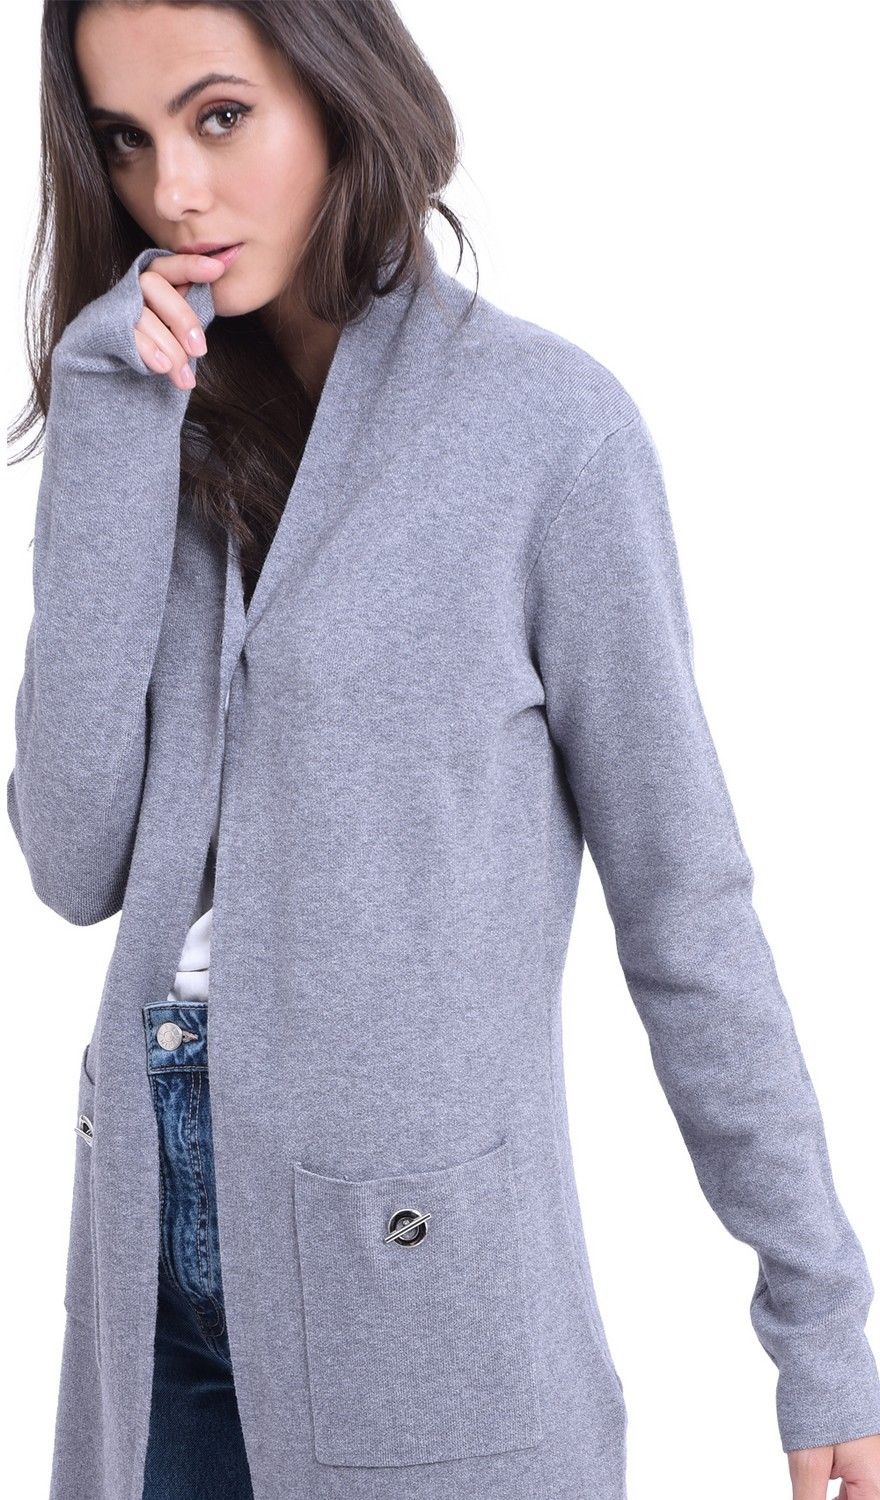 William De Faye Longline Shawl Collar Cardigan with Pockets in Grey